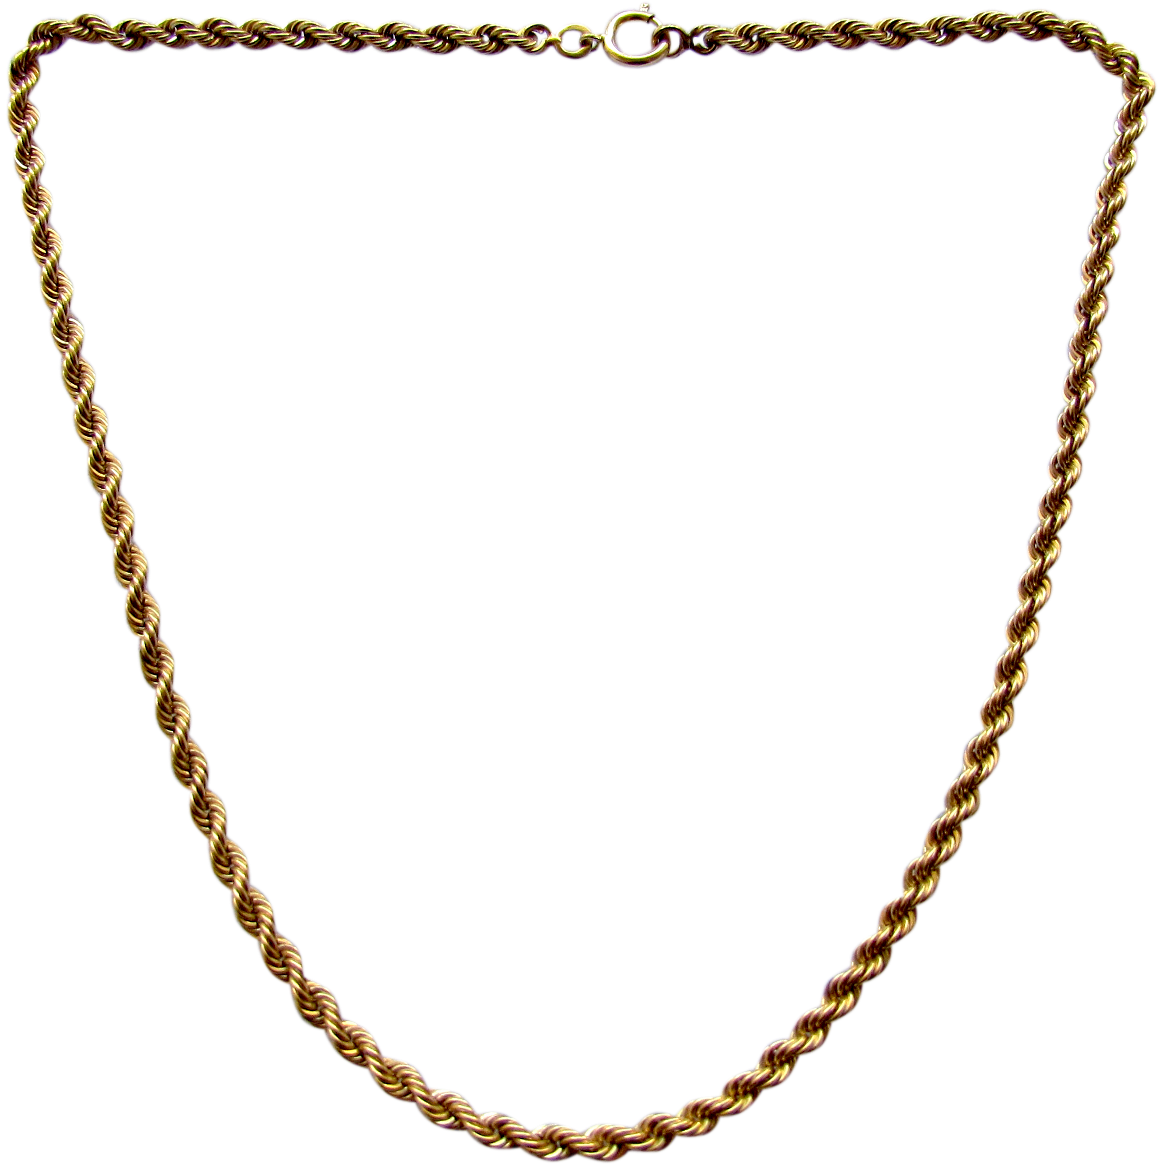 Vintage 14K Yellow Gold Rope Chain Necklace or Bracelet